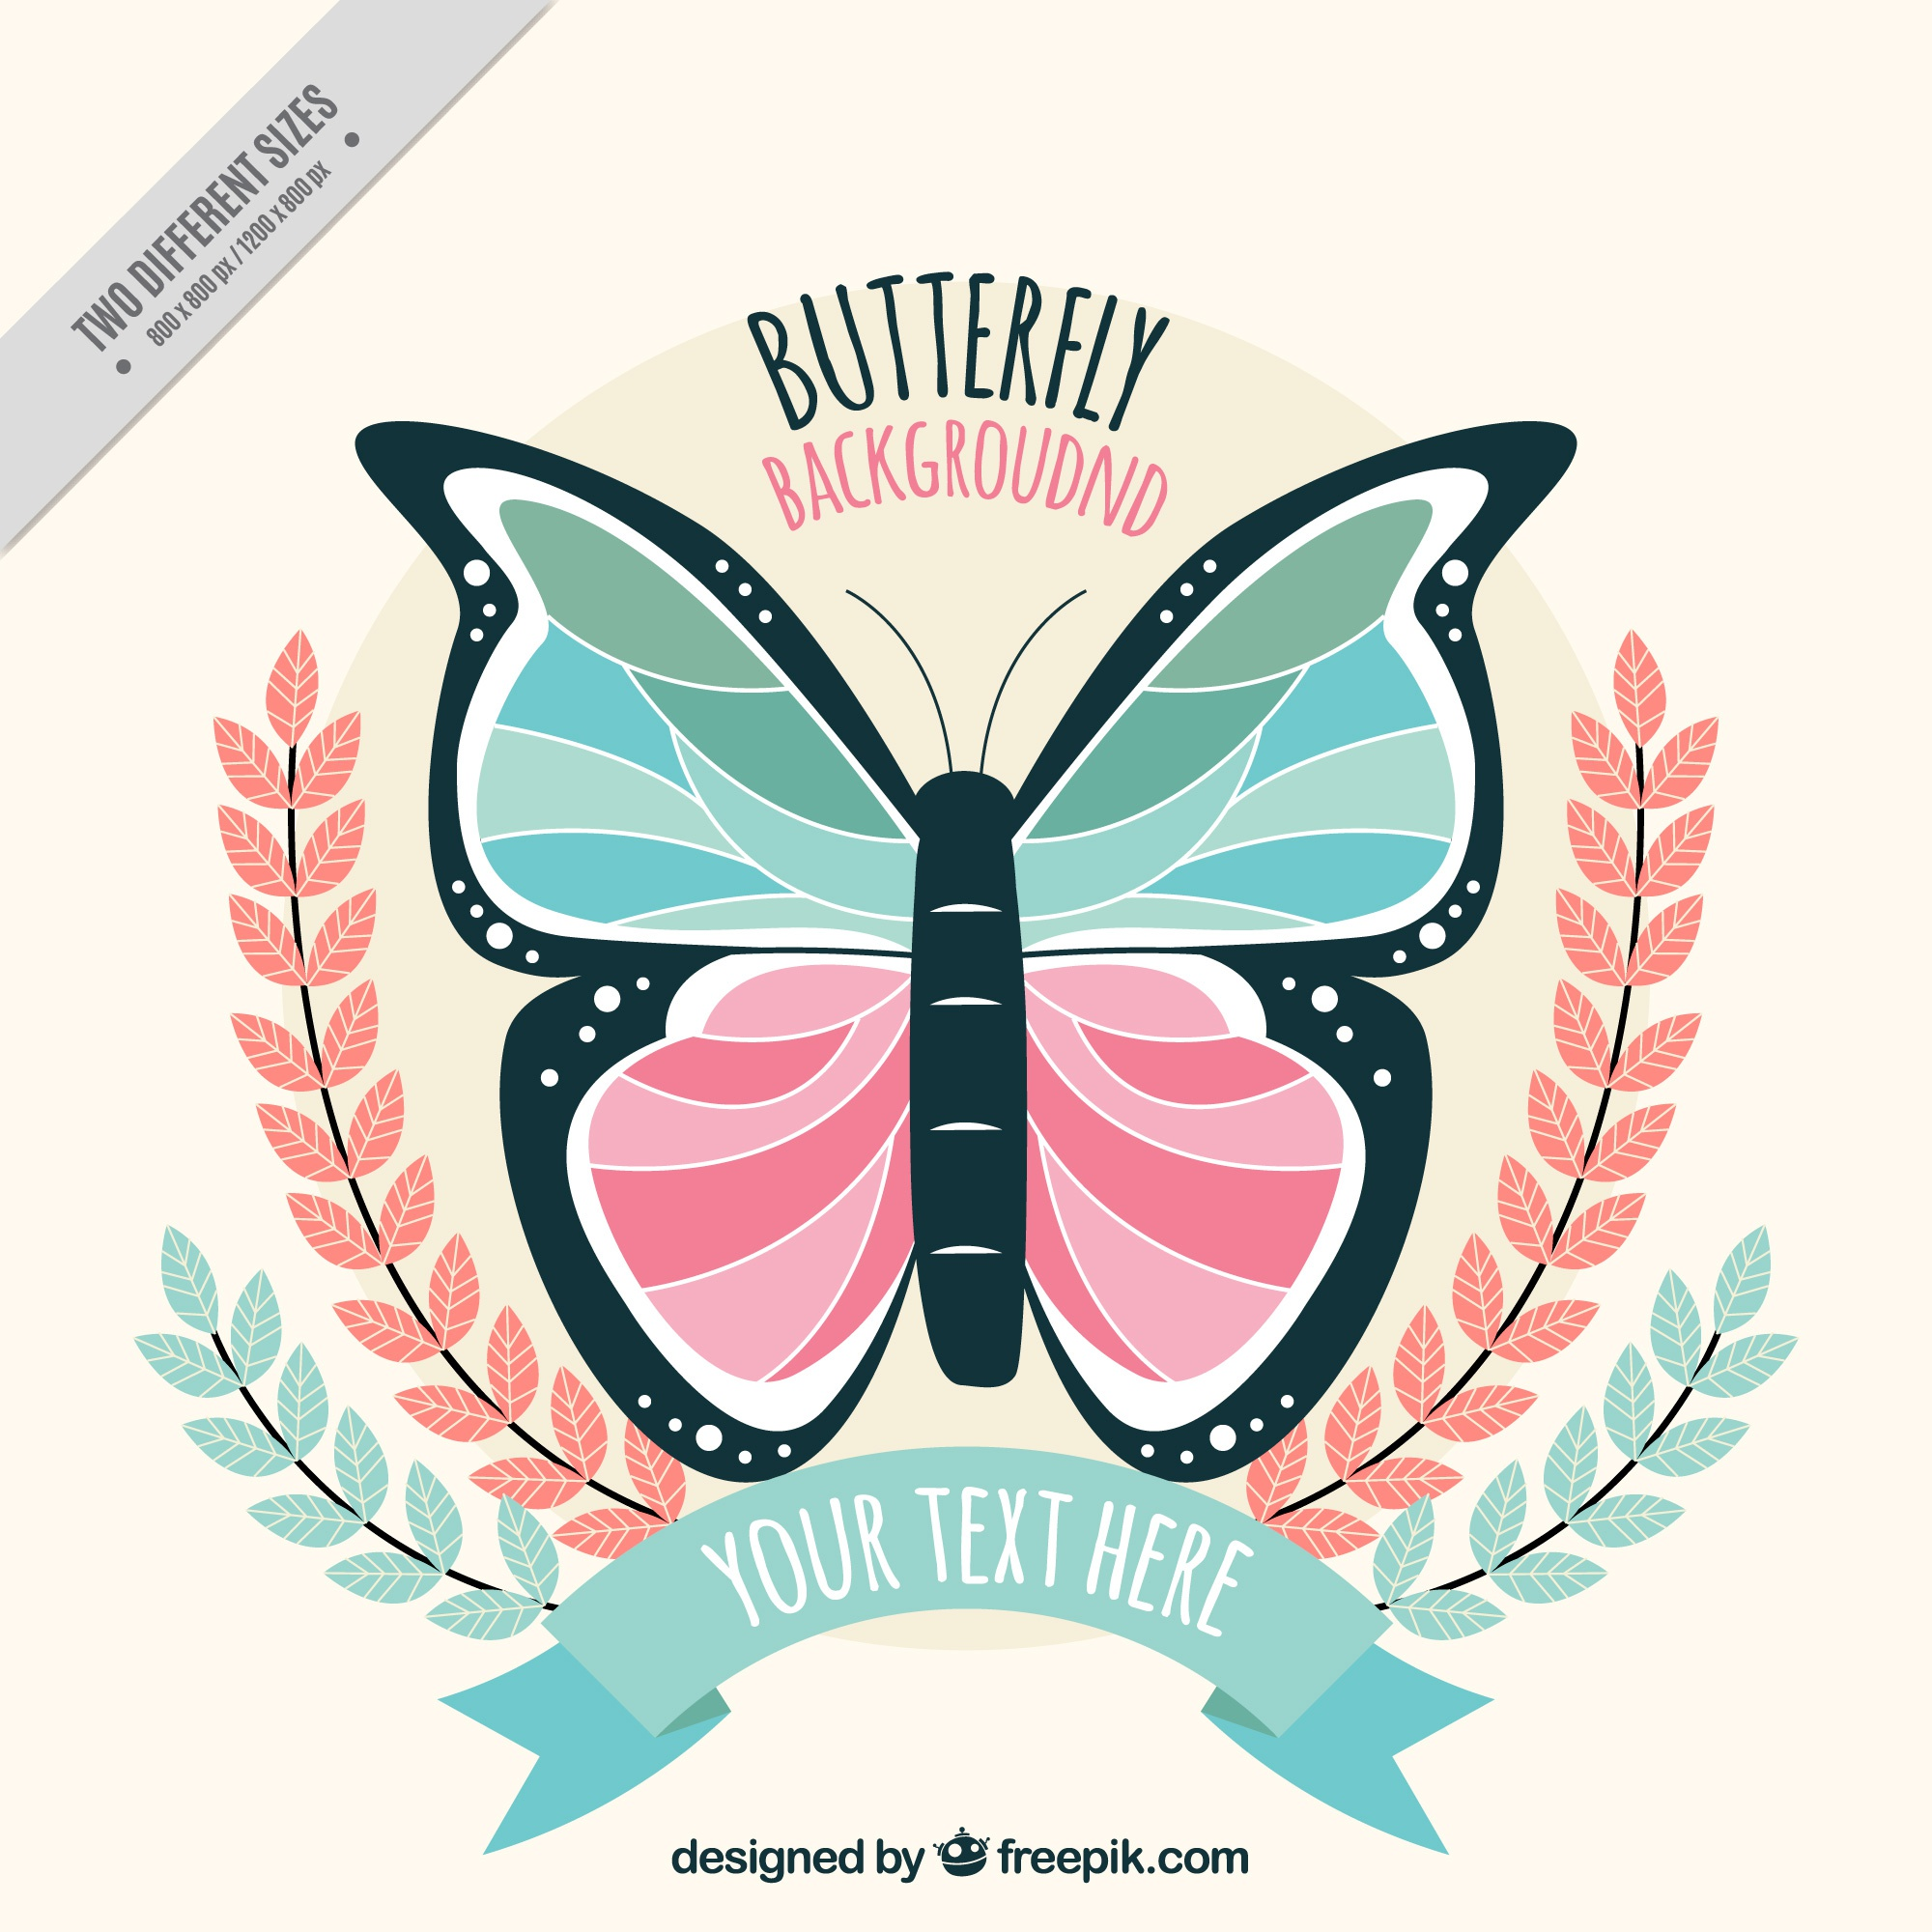 Flat butterfly background in pastel colors